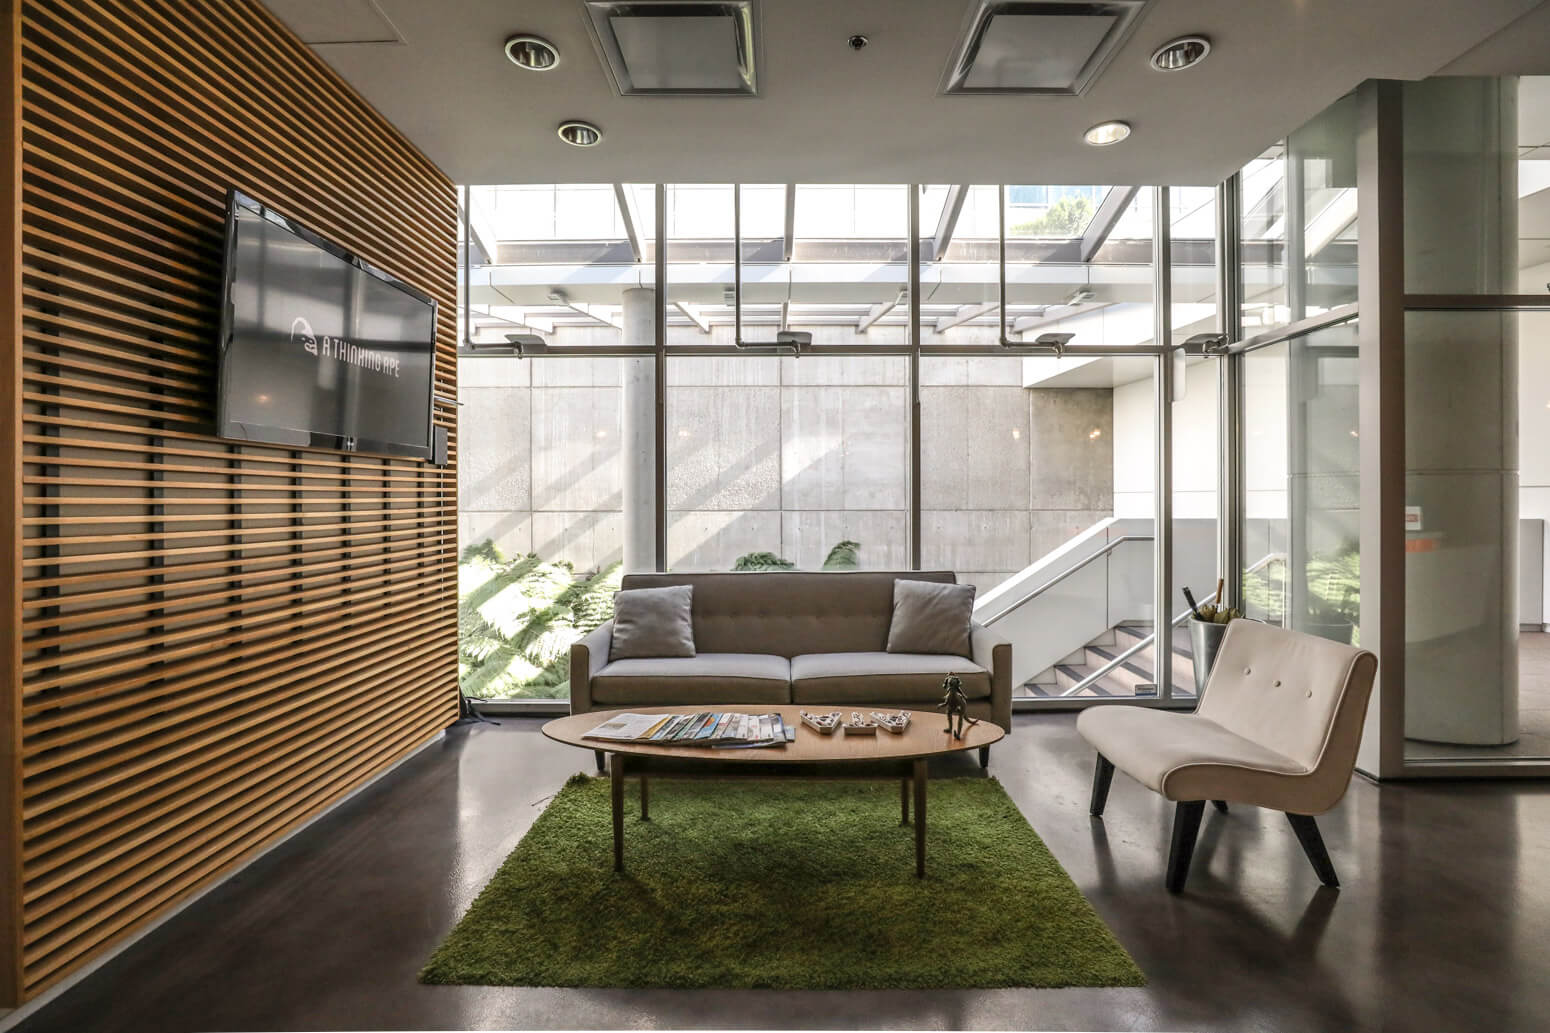 A Thinking Ape Office Killer Spaces-20